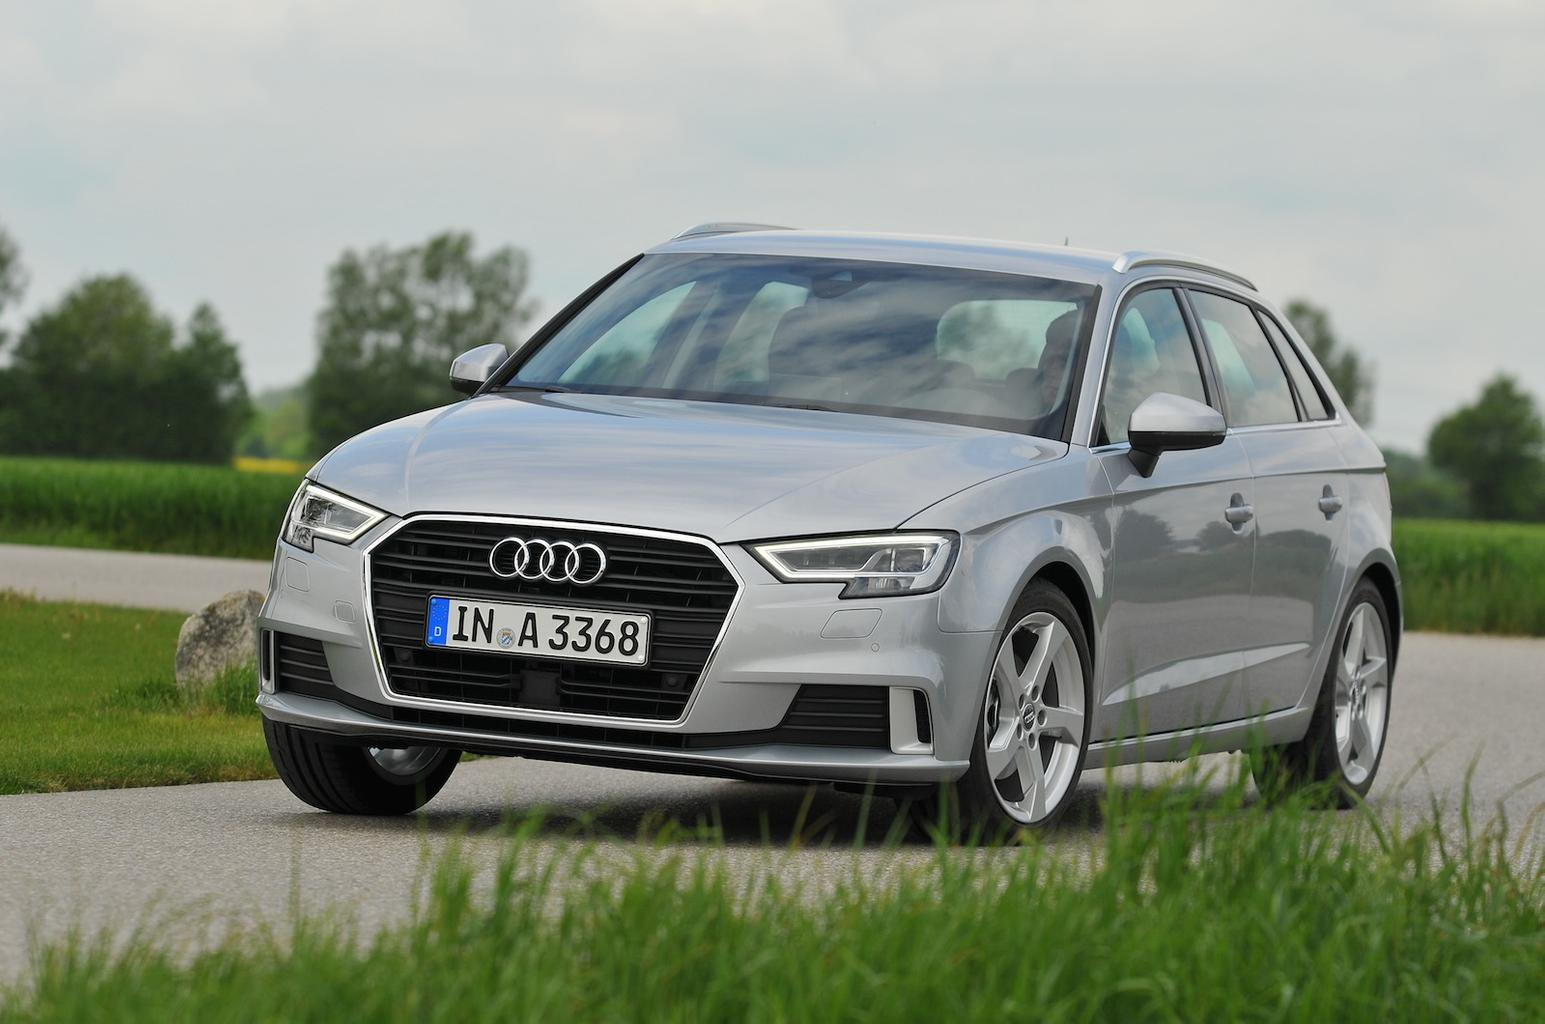 2016 Audi A3 Sportback 1.6 TDI review